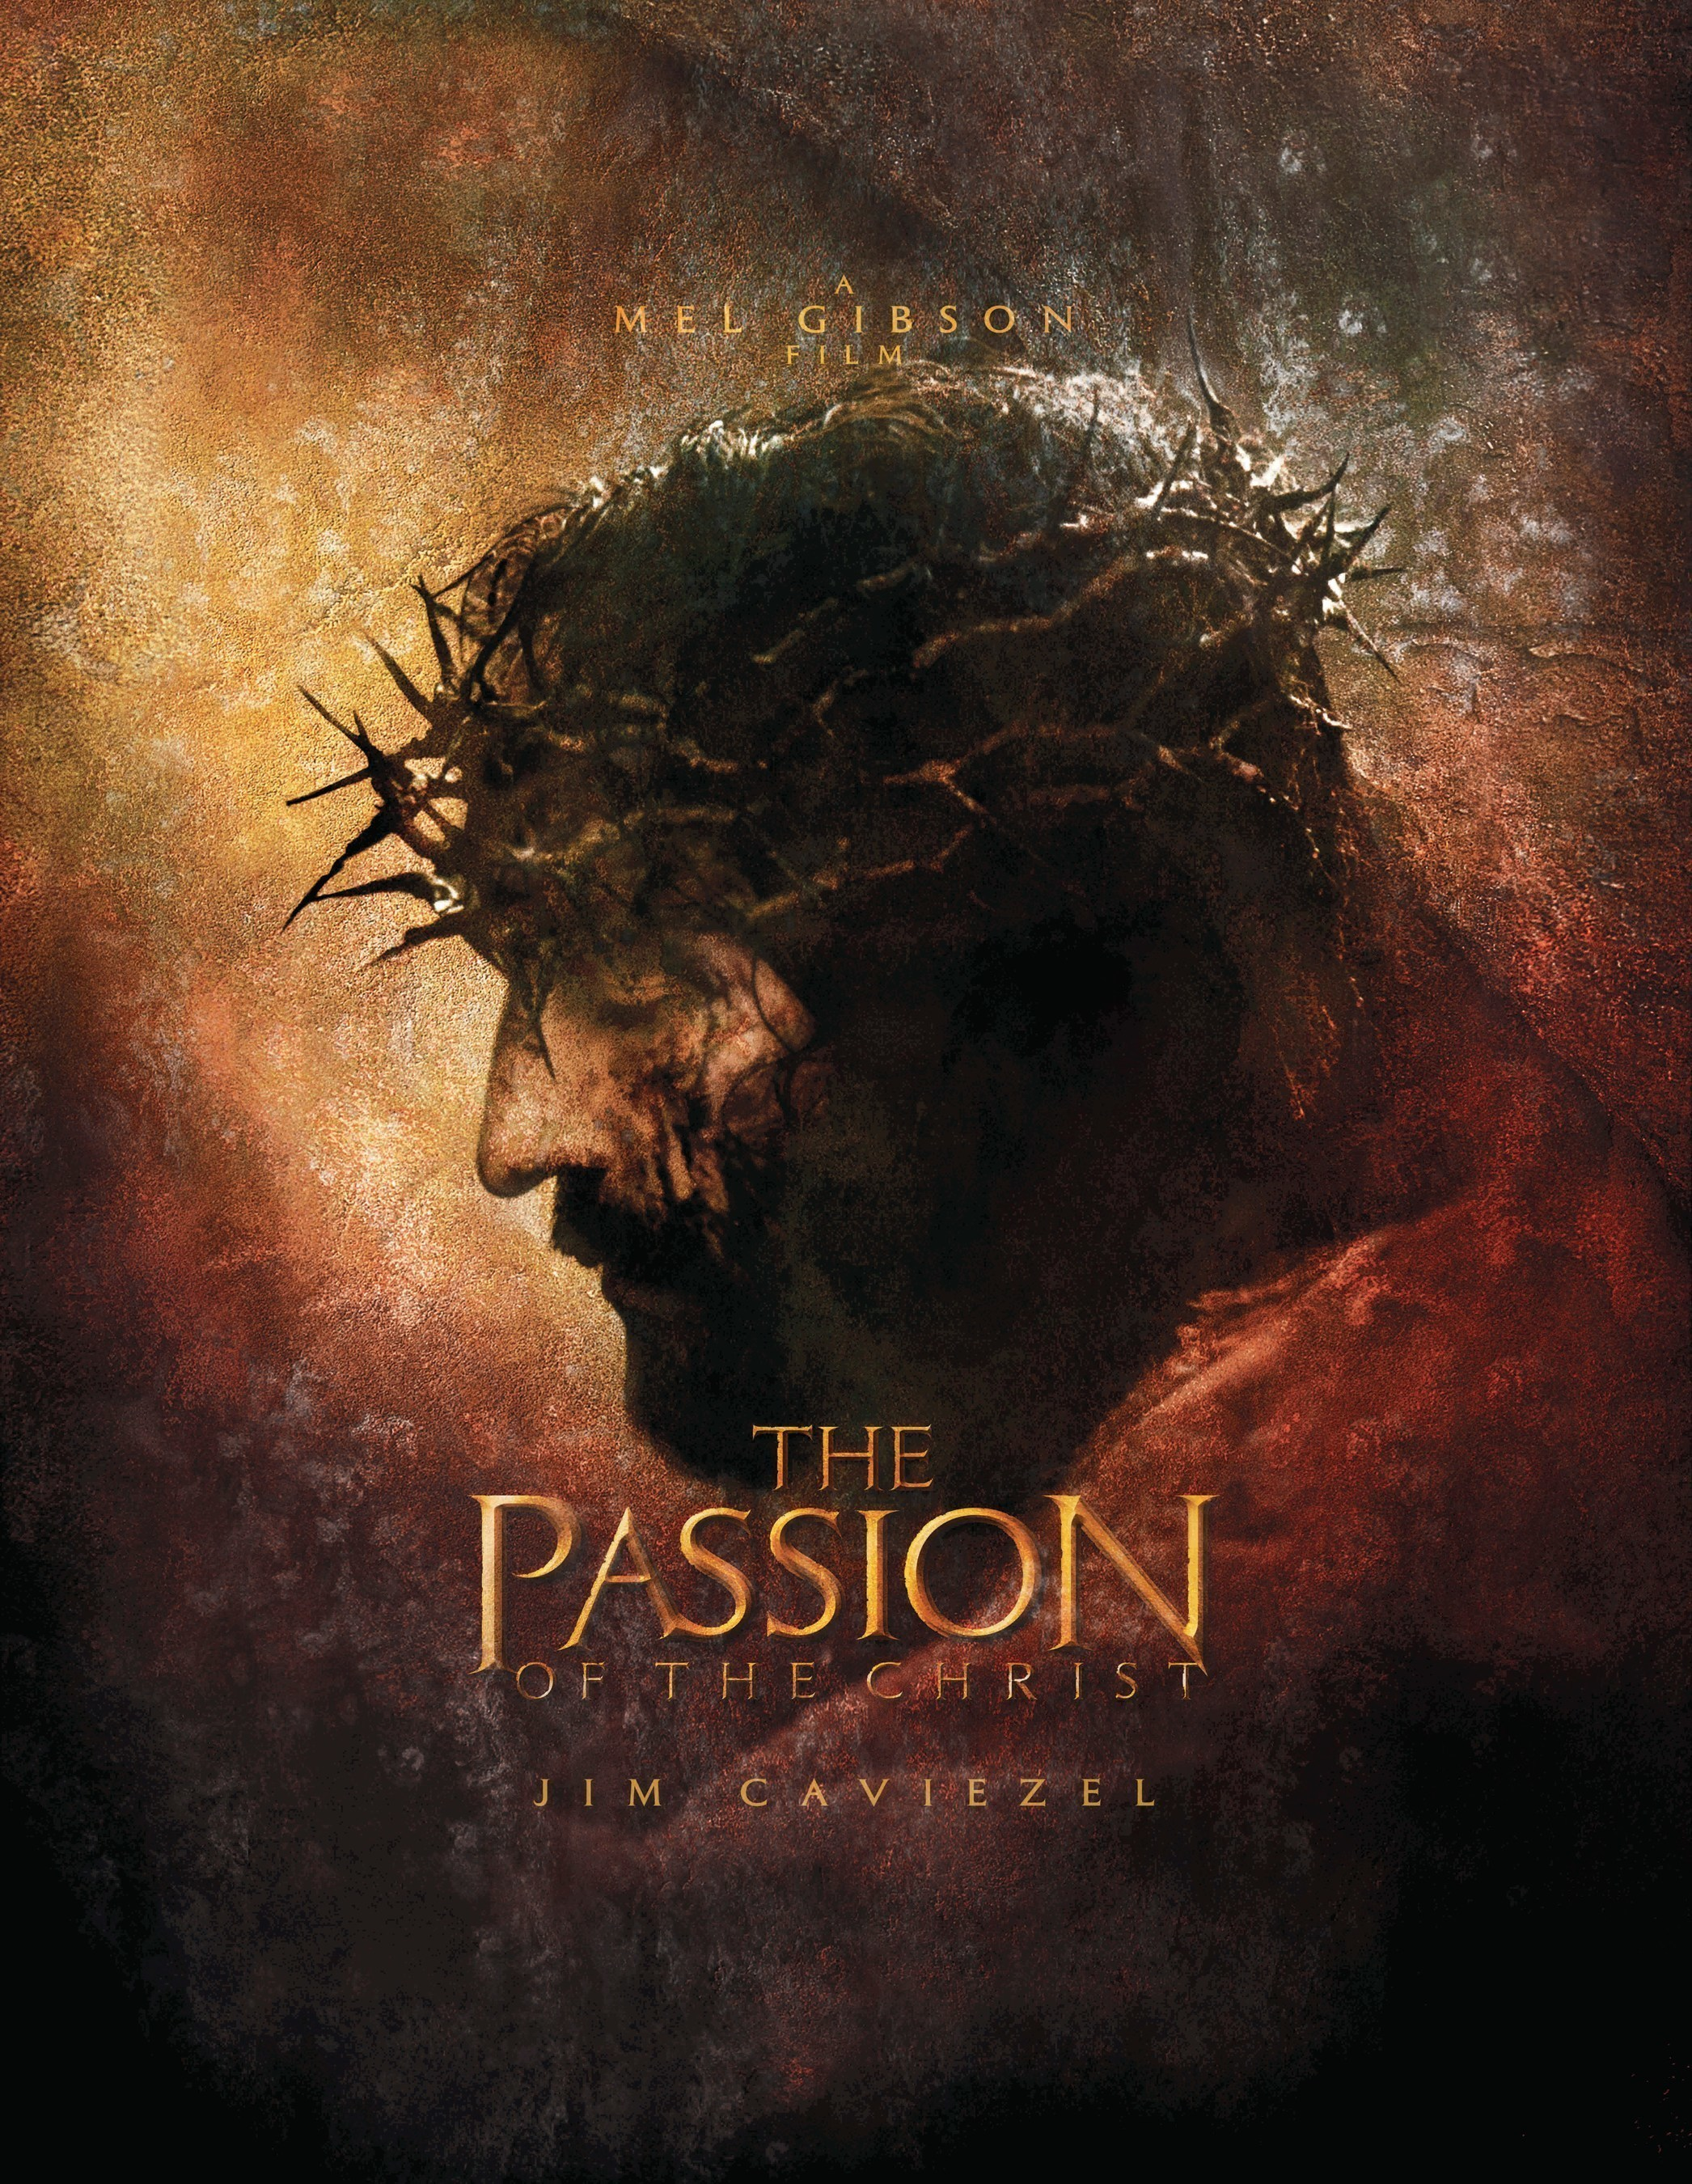 A Continuing Tradition: TBN Airs Mel Gibson's 'The Passion of the Christ' During Easter Week